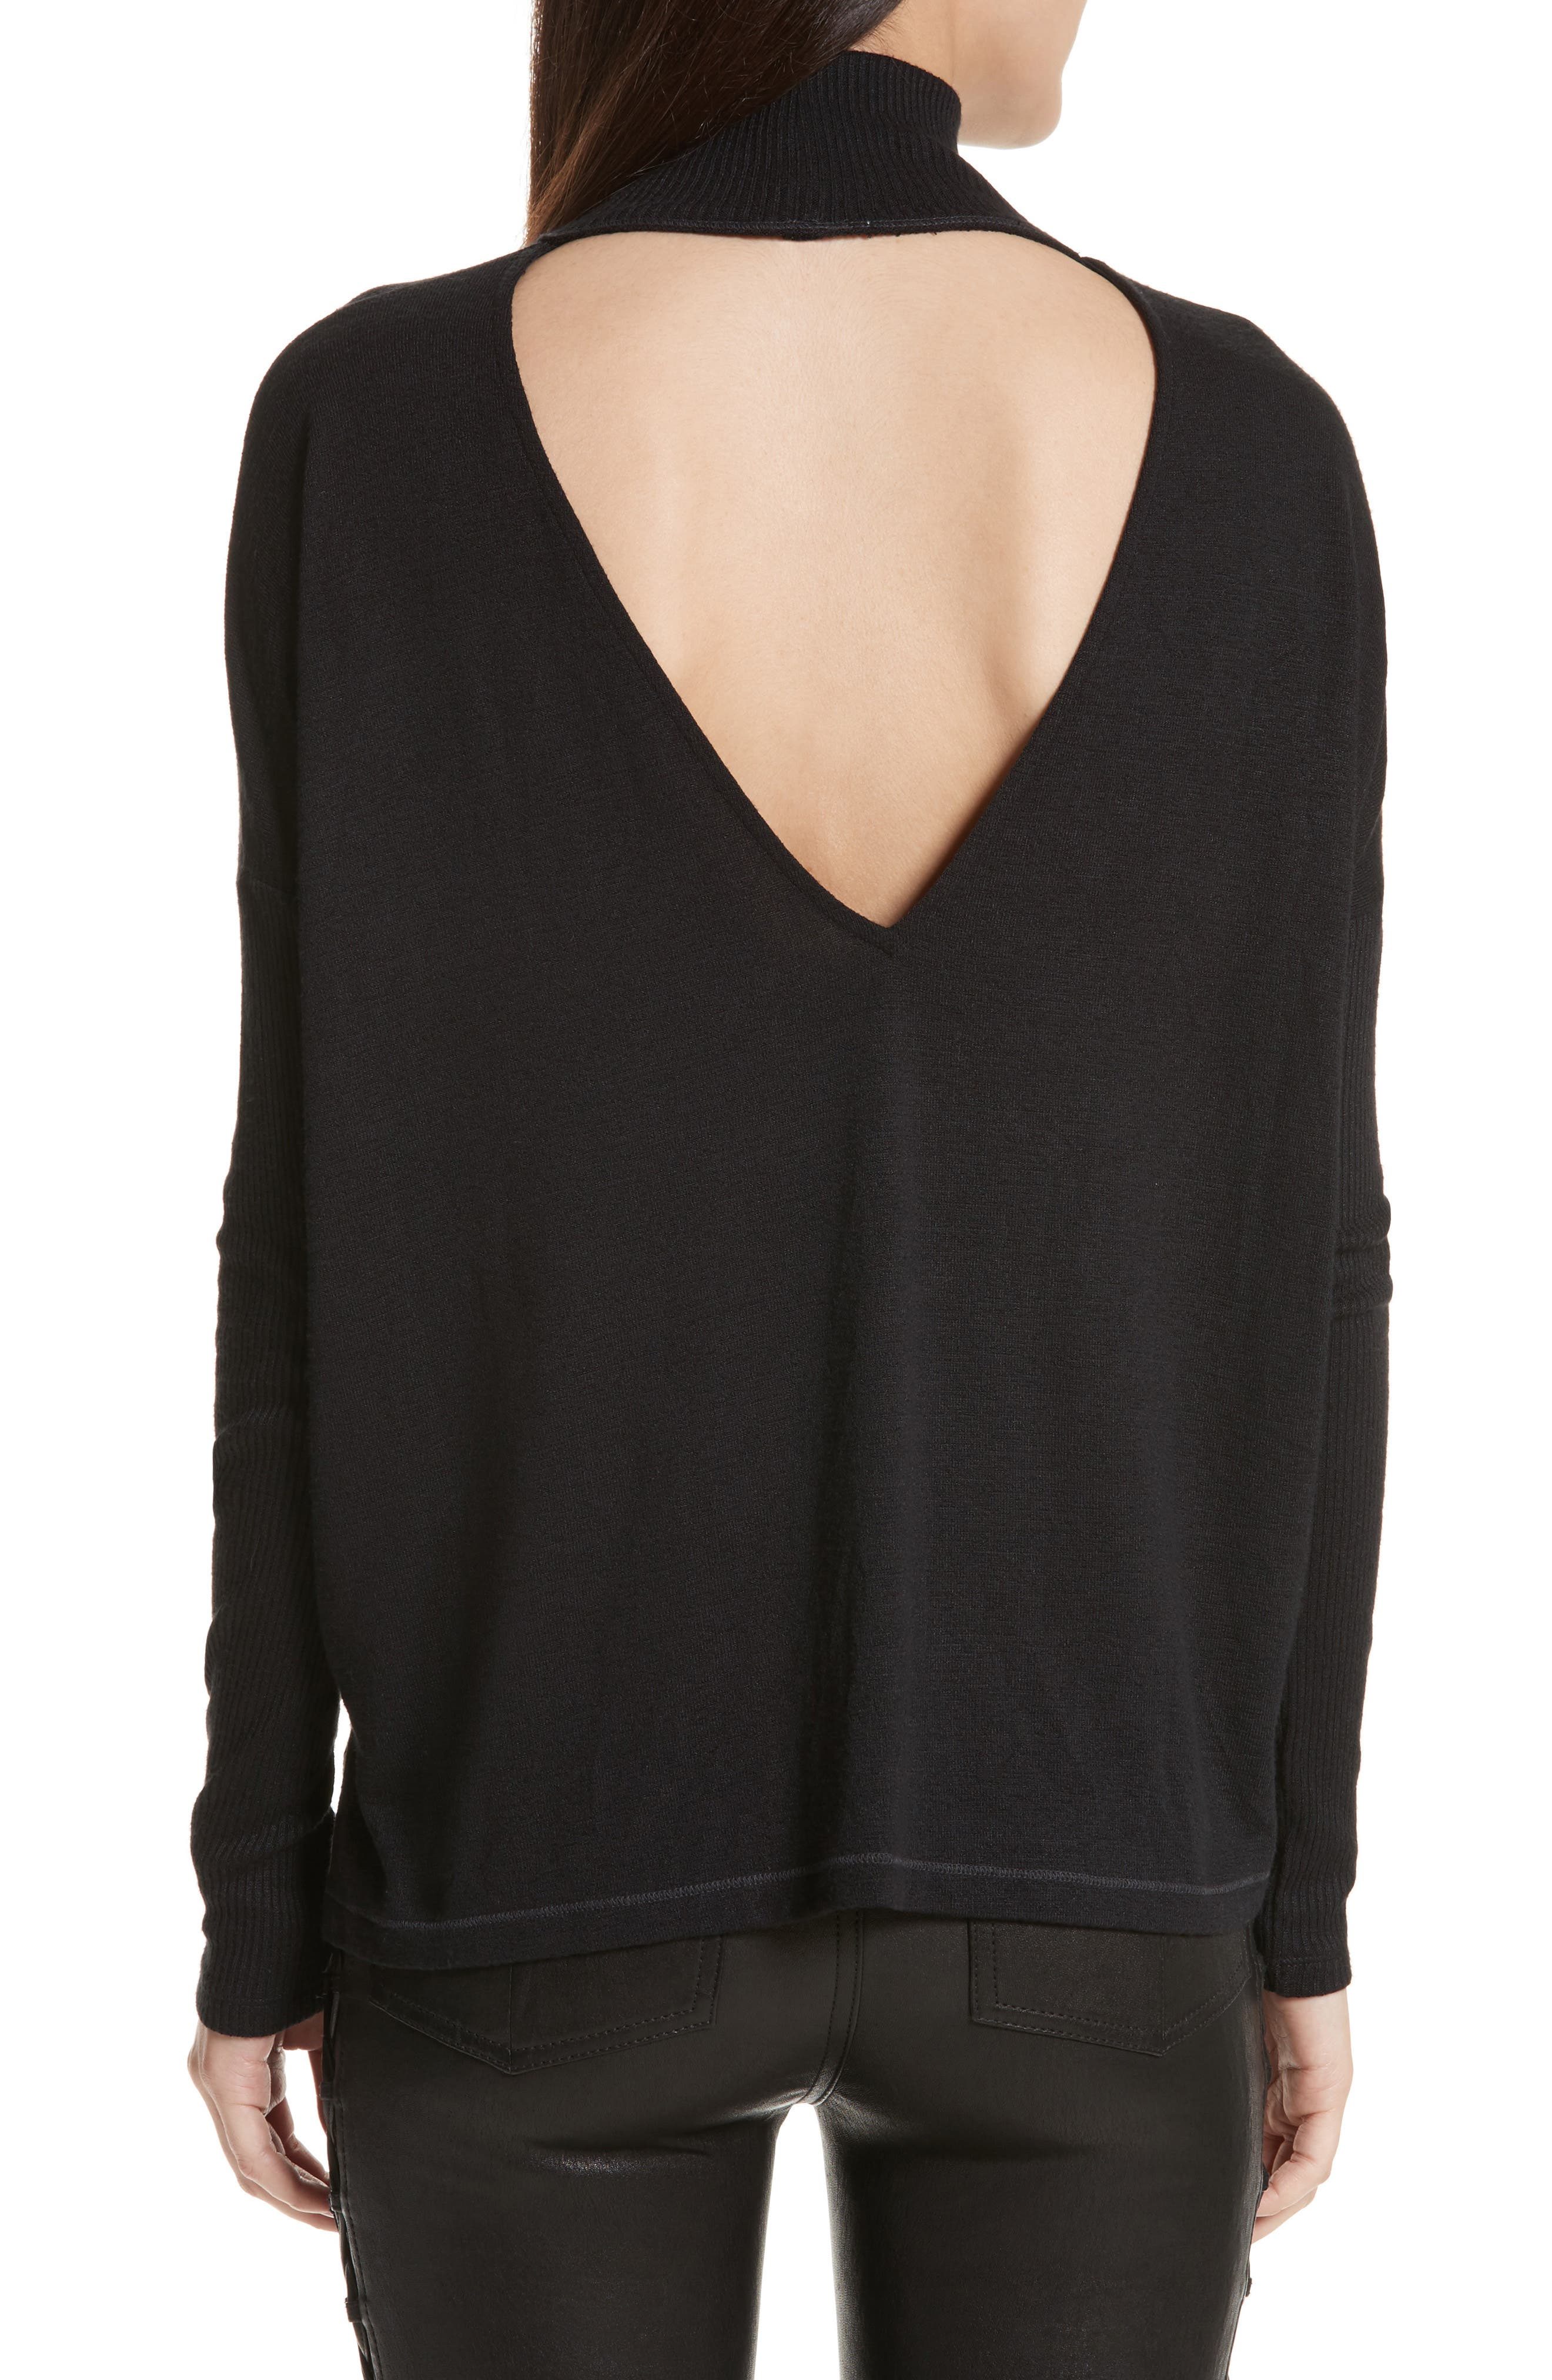 JEAN Amelie Back Cutout Turtleneck,                             Alternate thumbnail 2, color,                             001